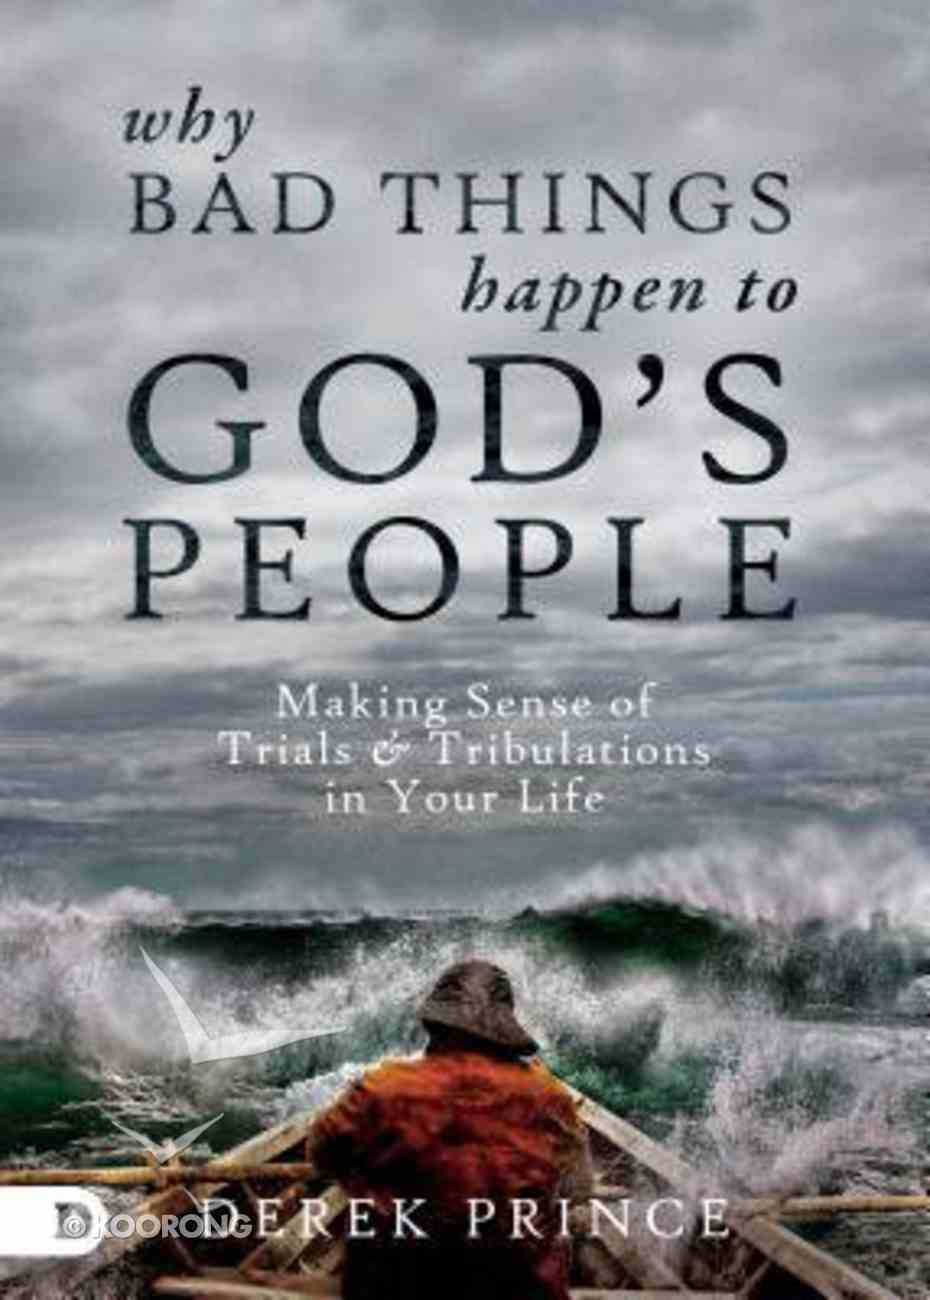 Why Bad Things Happen to God's People Paperback